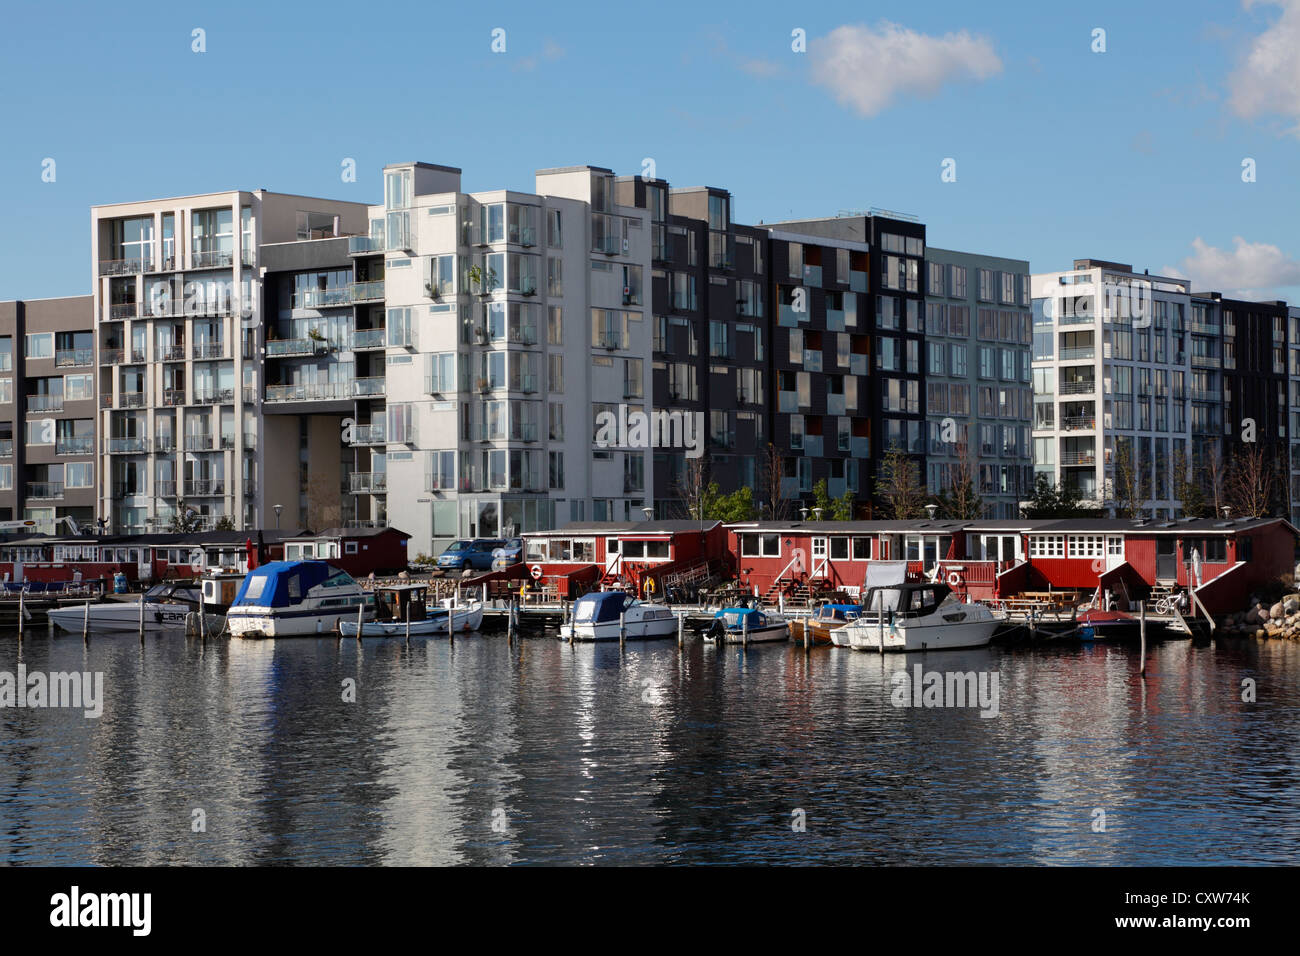 Modern residential buildings with Venice-like canals between the buildings on Sluseholmen in Copenhagen, a former - Stock Image